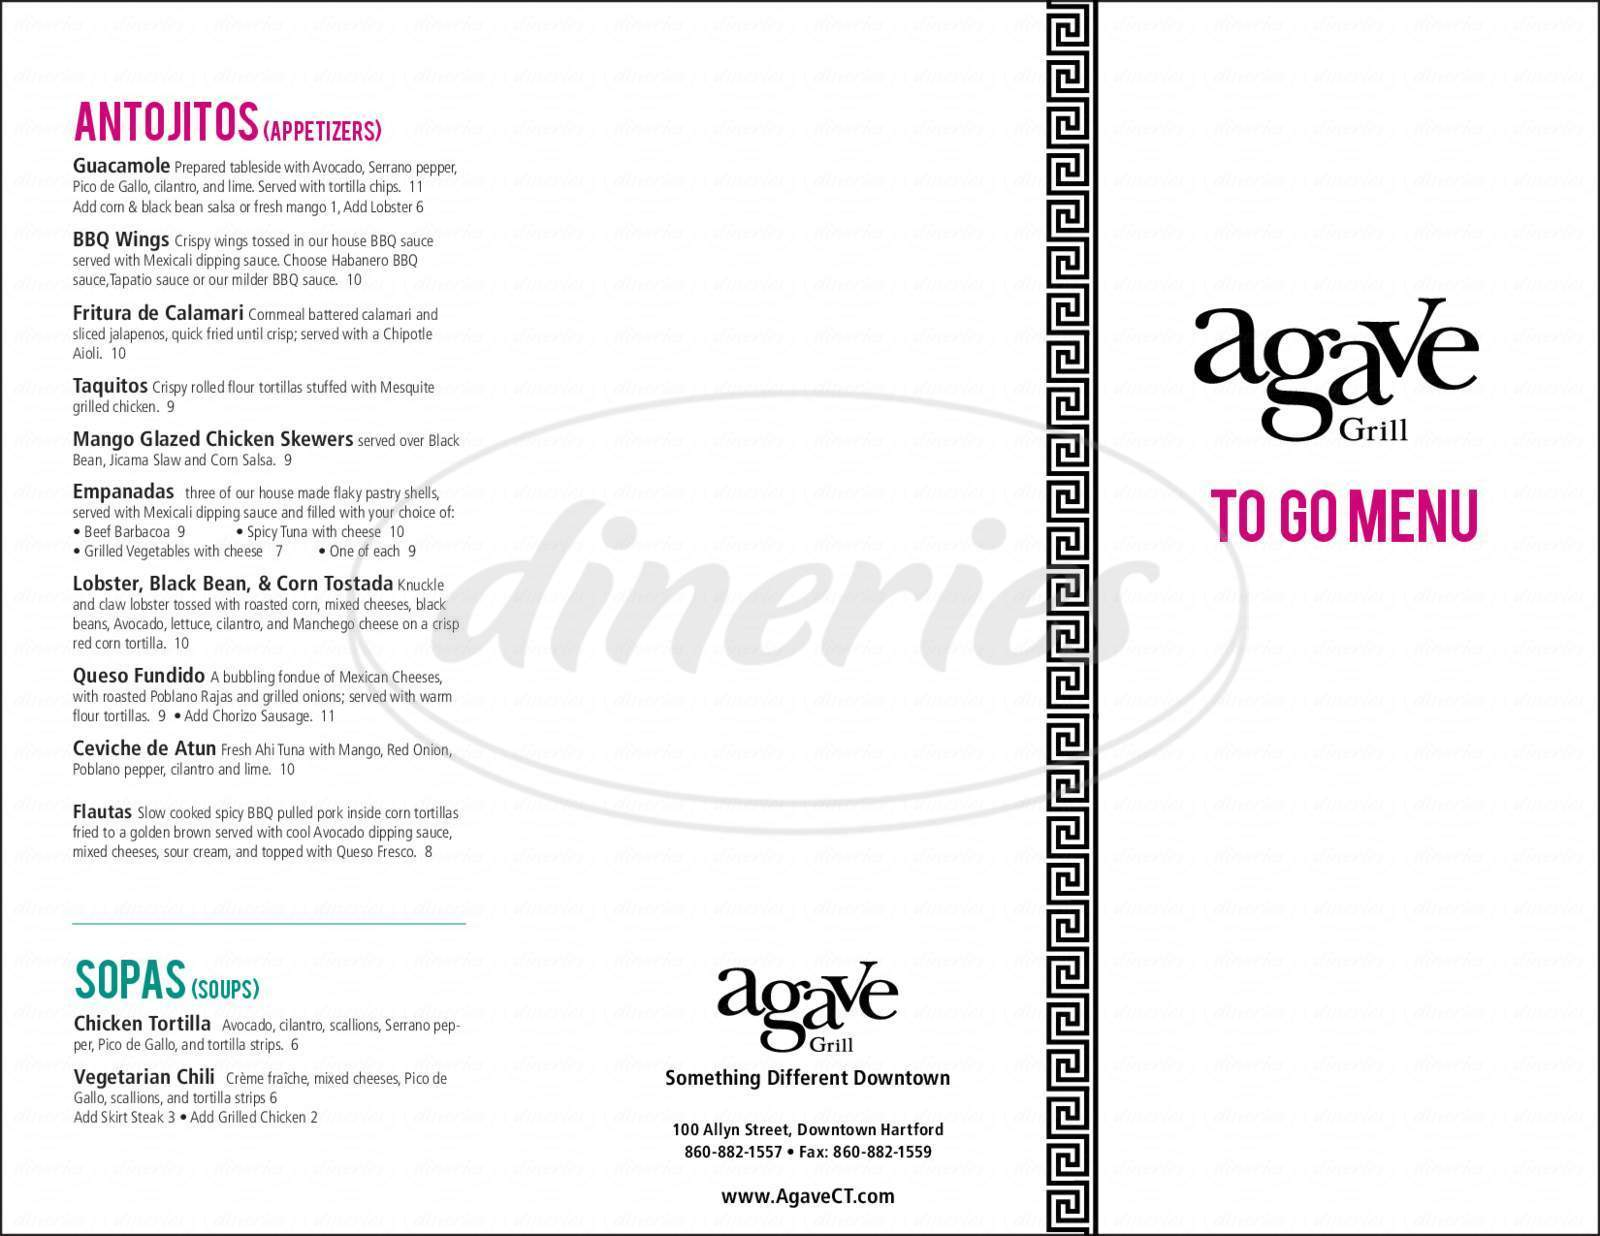 menu for Agave Grill & Tequila Bar